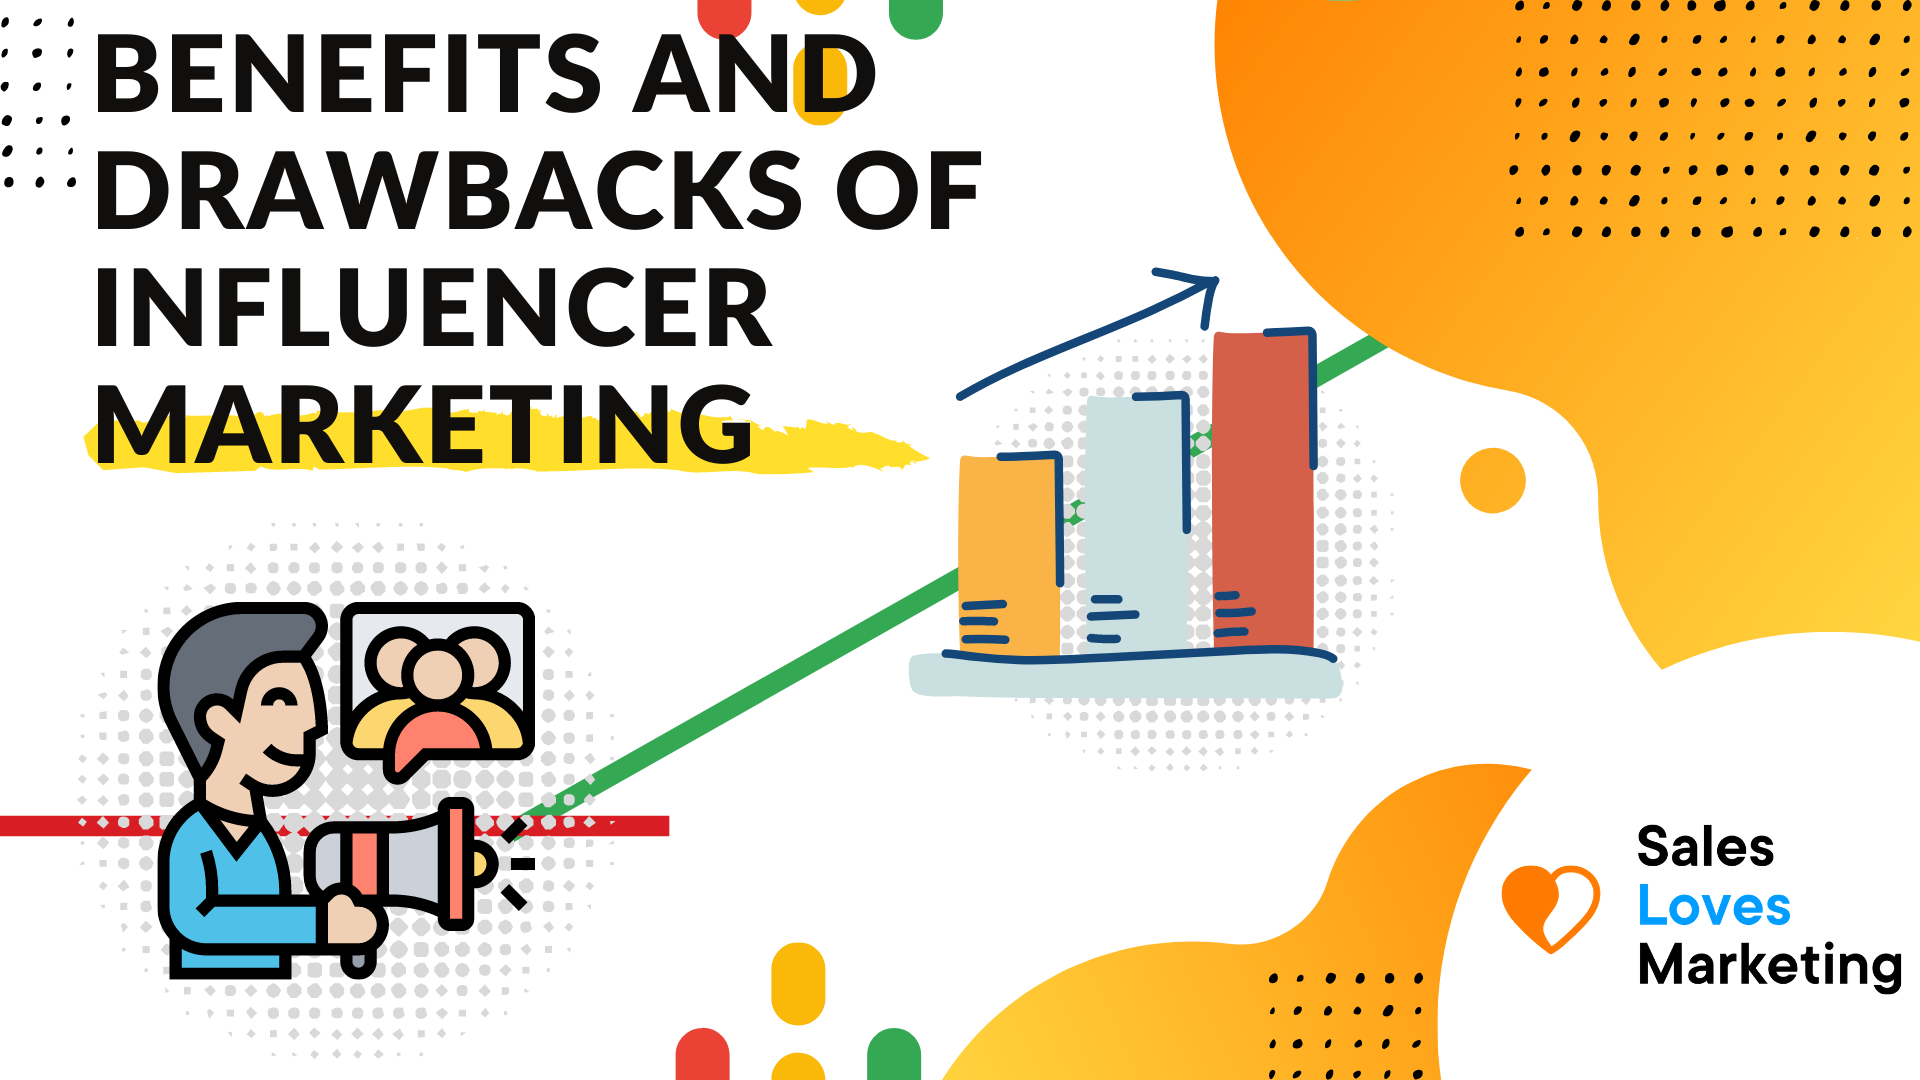 Benefits and drawbacks with influencer marketing